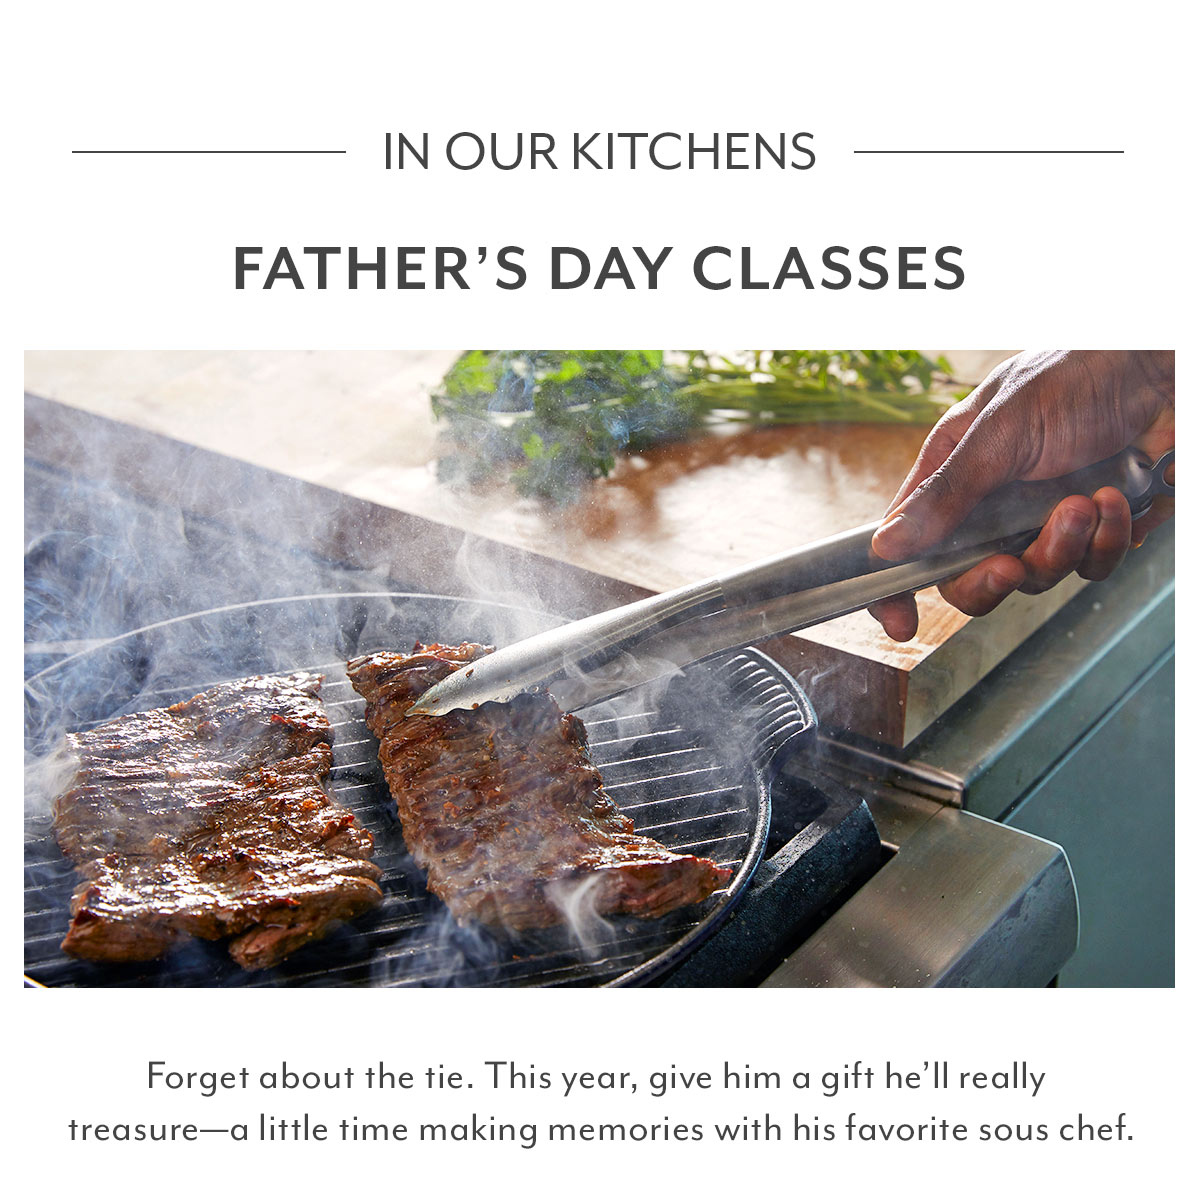 Father's Day Classes